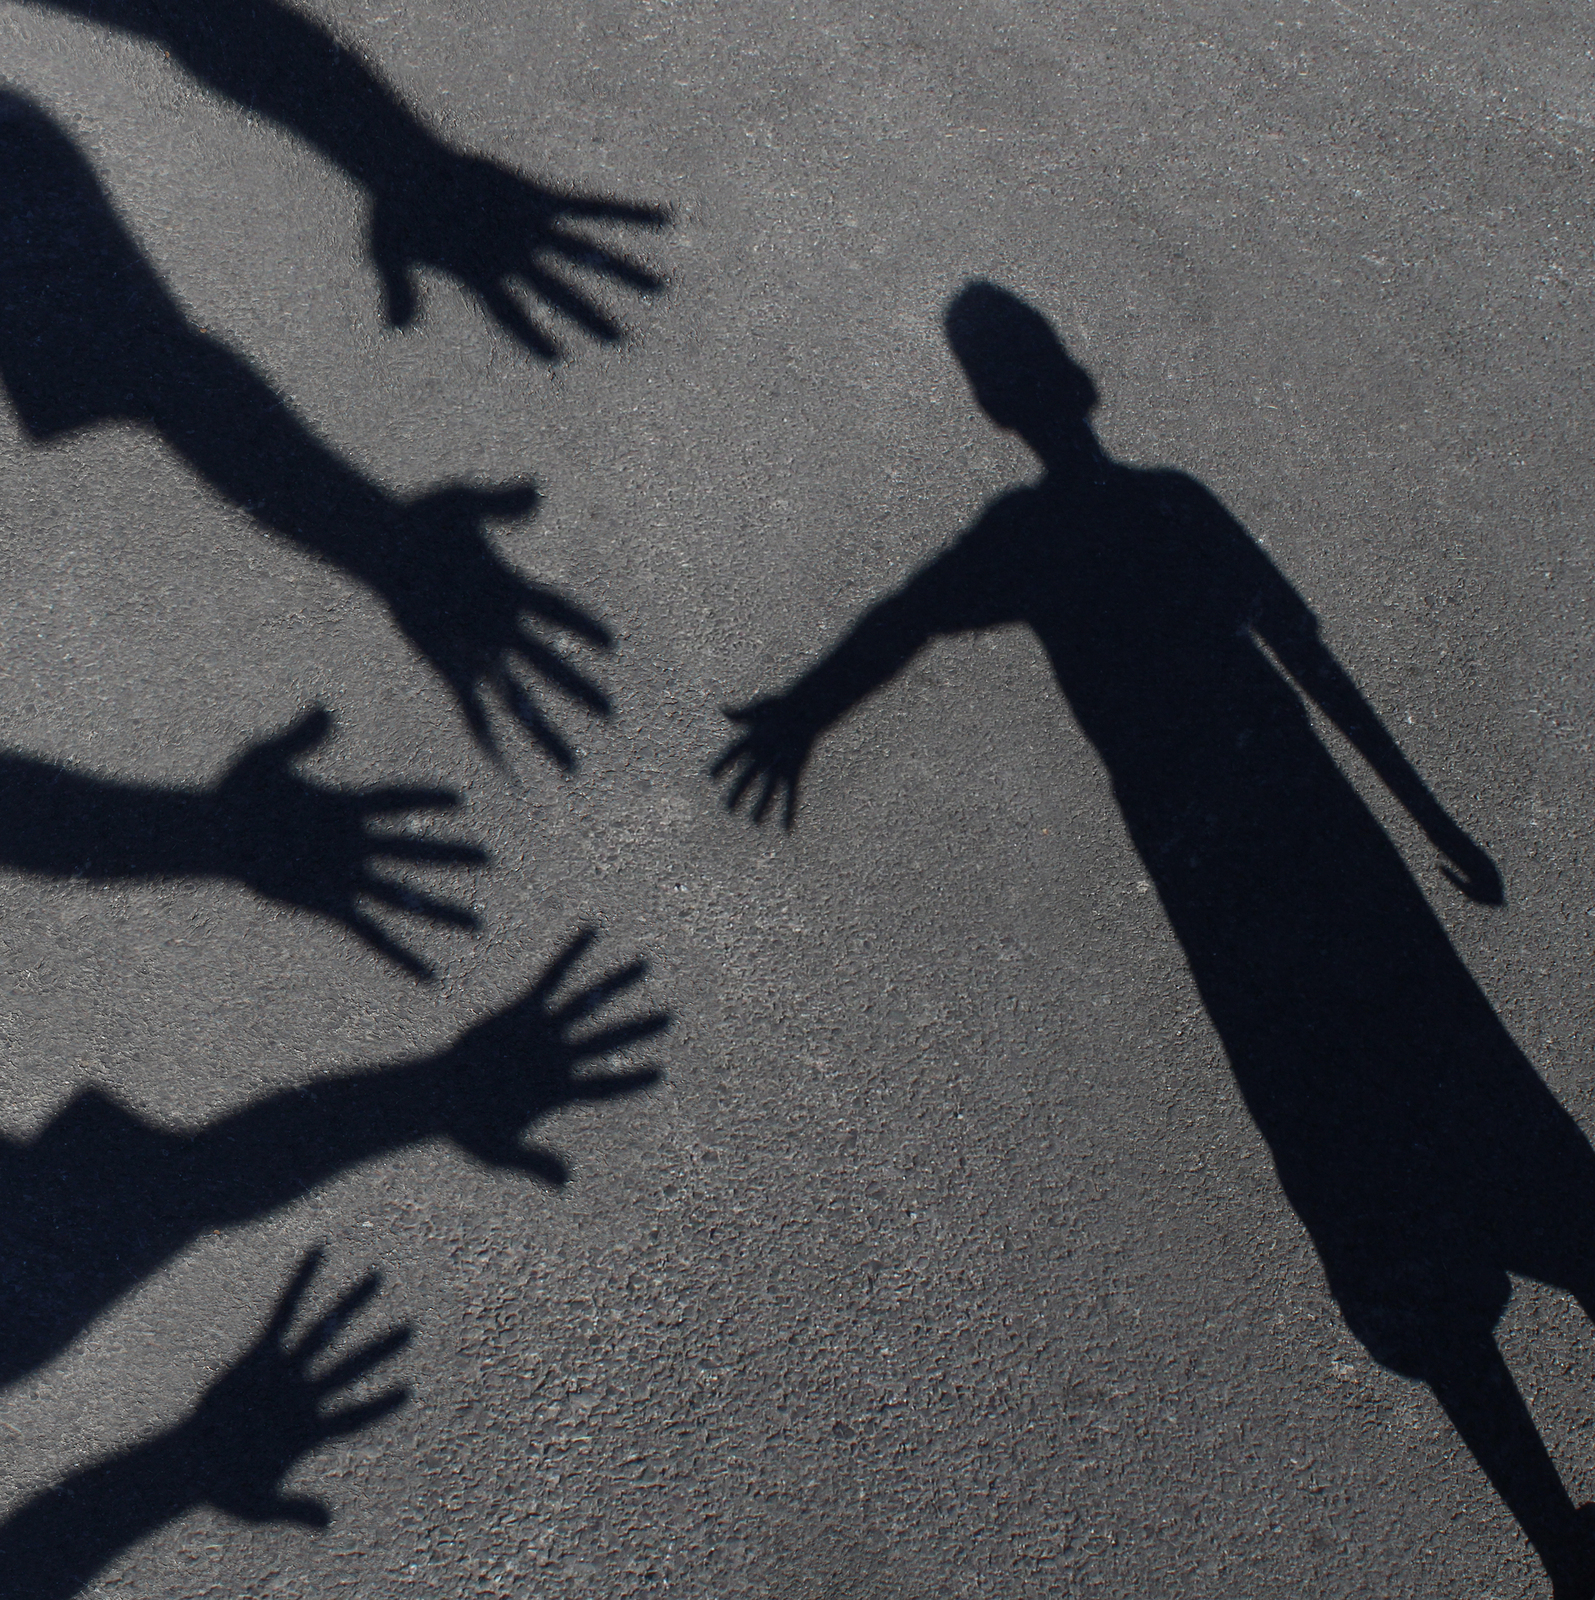 Community support and helping children concept with shadows of a group of extended adult hands offering help or therapy to a child in need as an education symbol of social responsibility t for needy kids and teacher guidance to students who need extra car